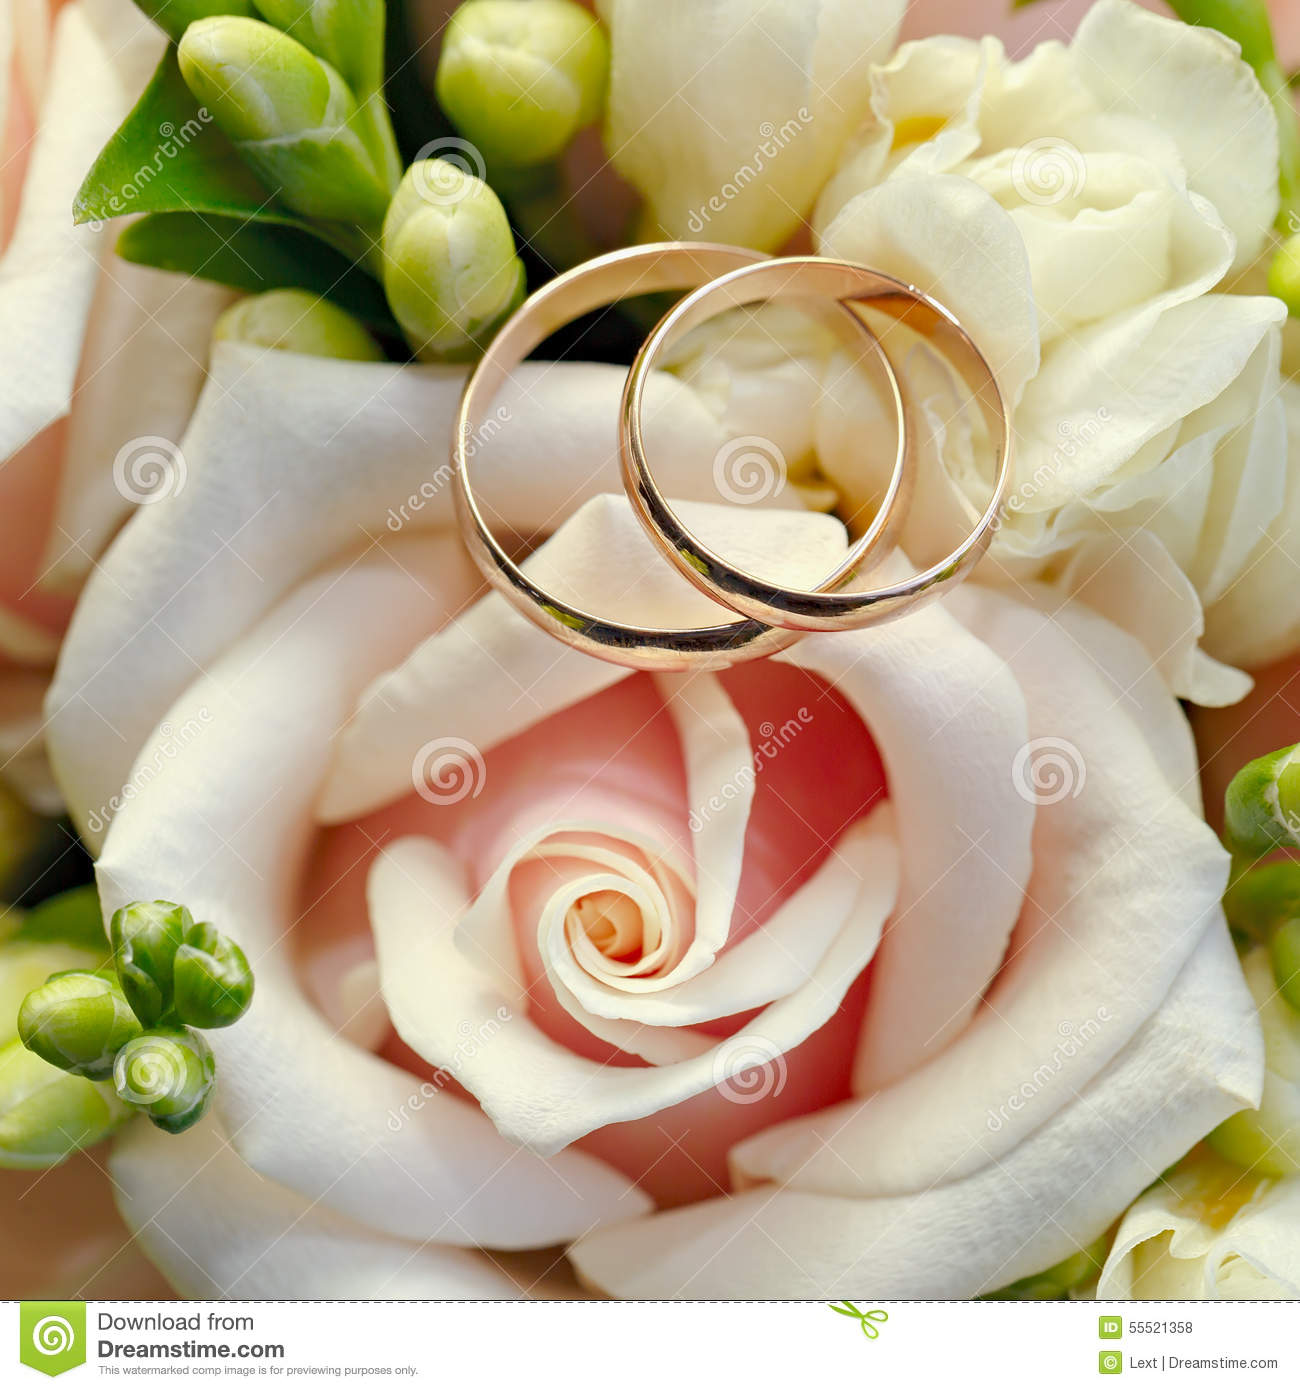 Wedding Rings Flowers: Gold Wedding Rings On Bouquet Of Flowers For The Bride